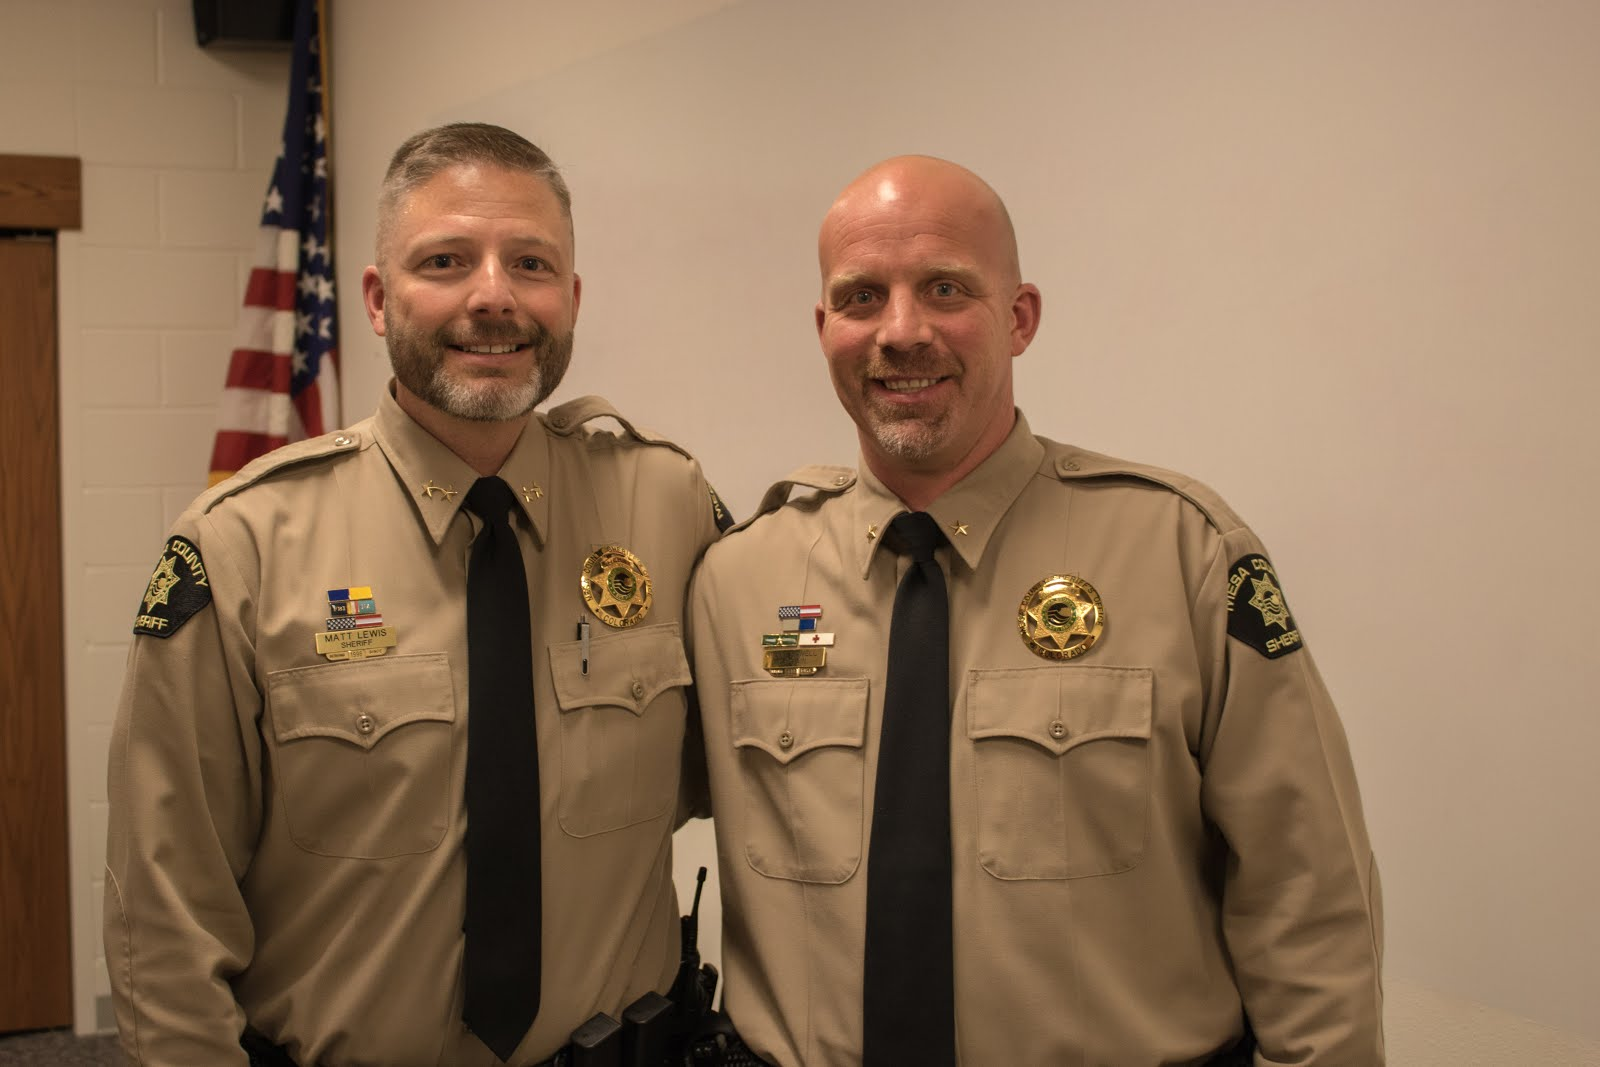 MCSO NEWS: MCSO Welcomes new Undersheriff